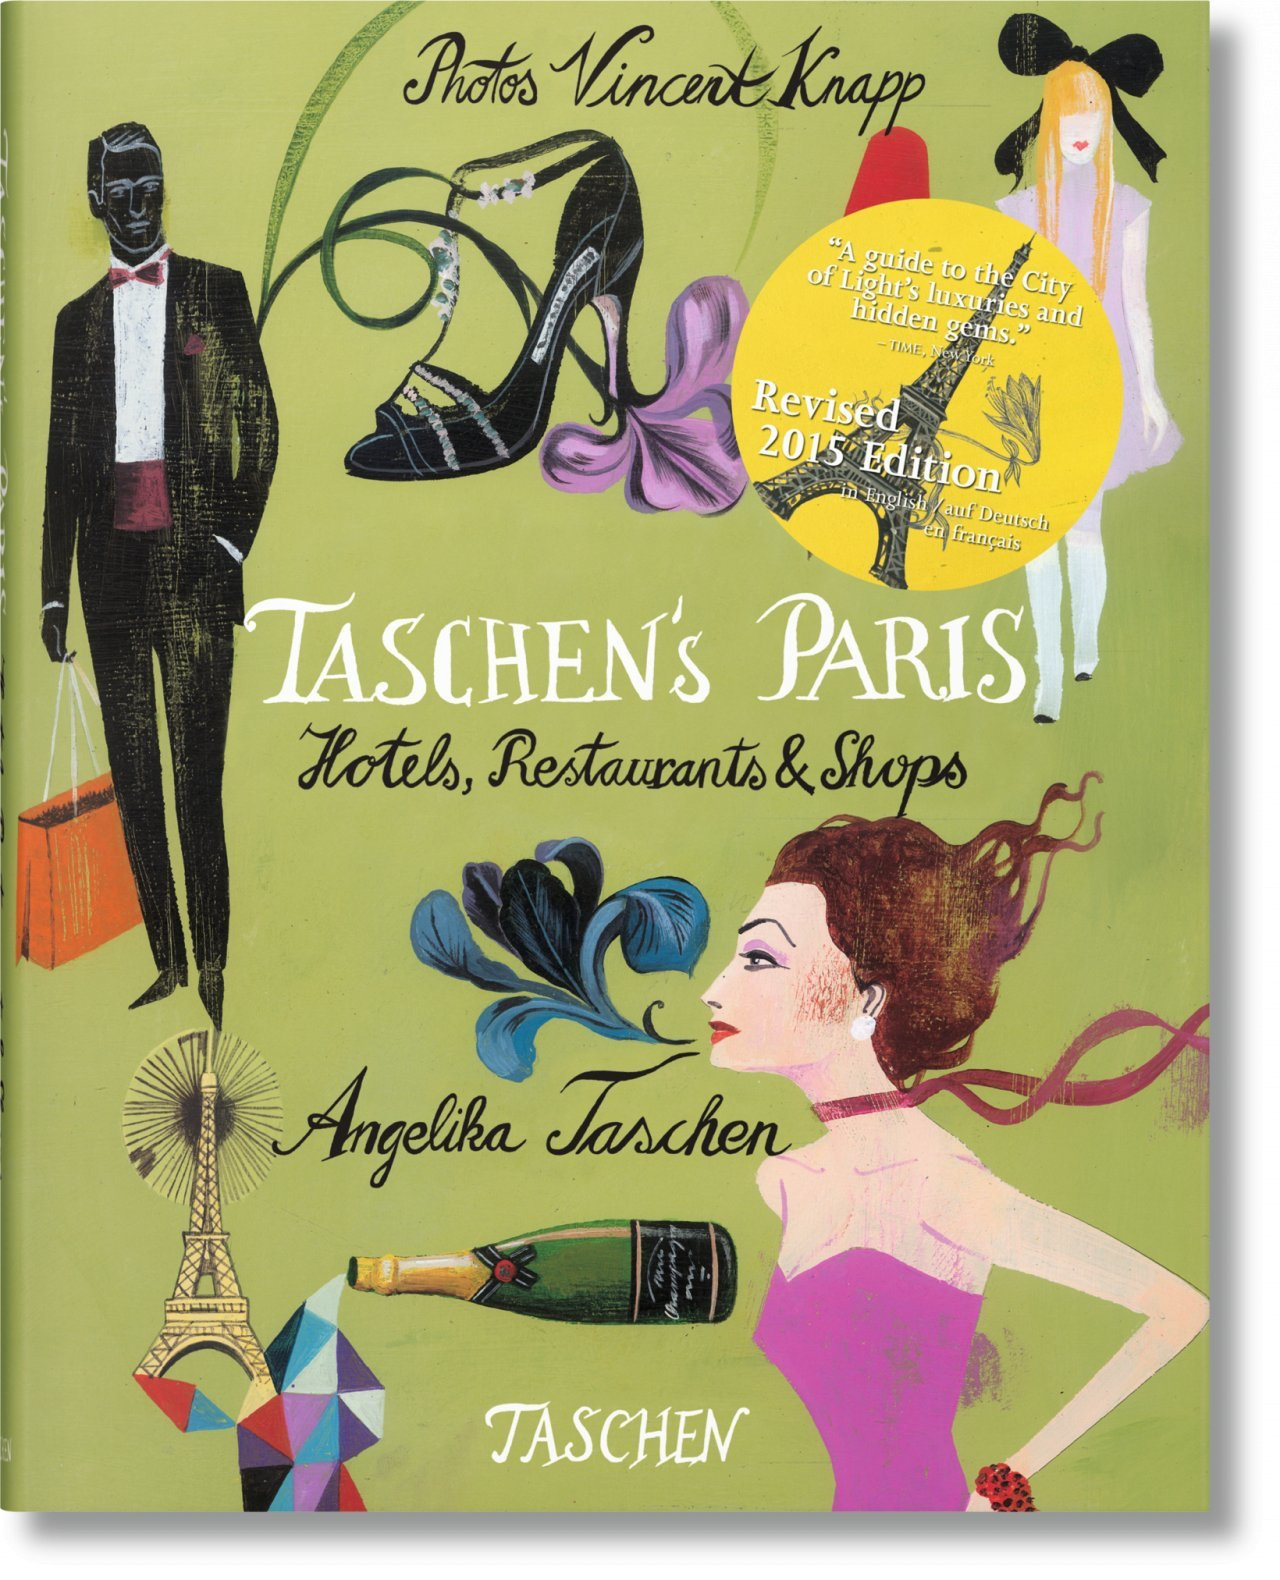 JU-TASCHEN'S PARIS. 2ND EDITION